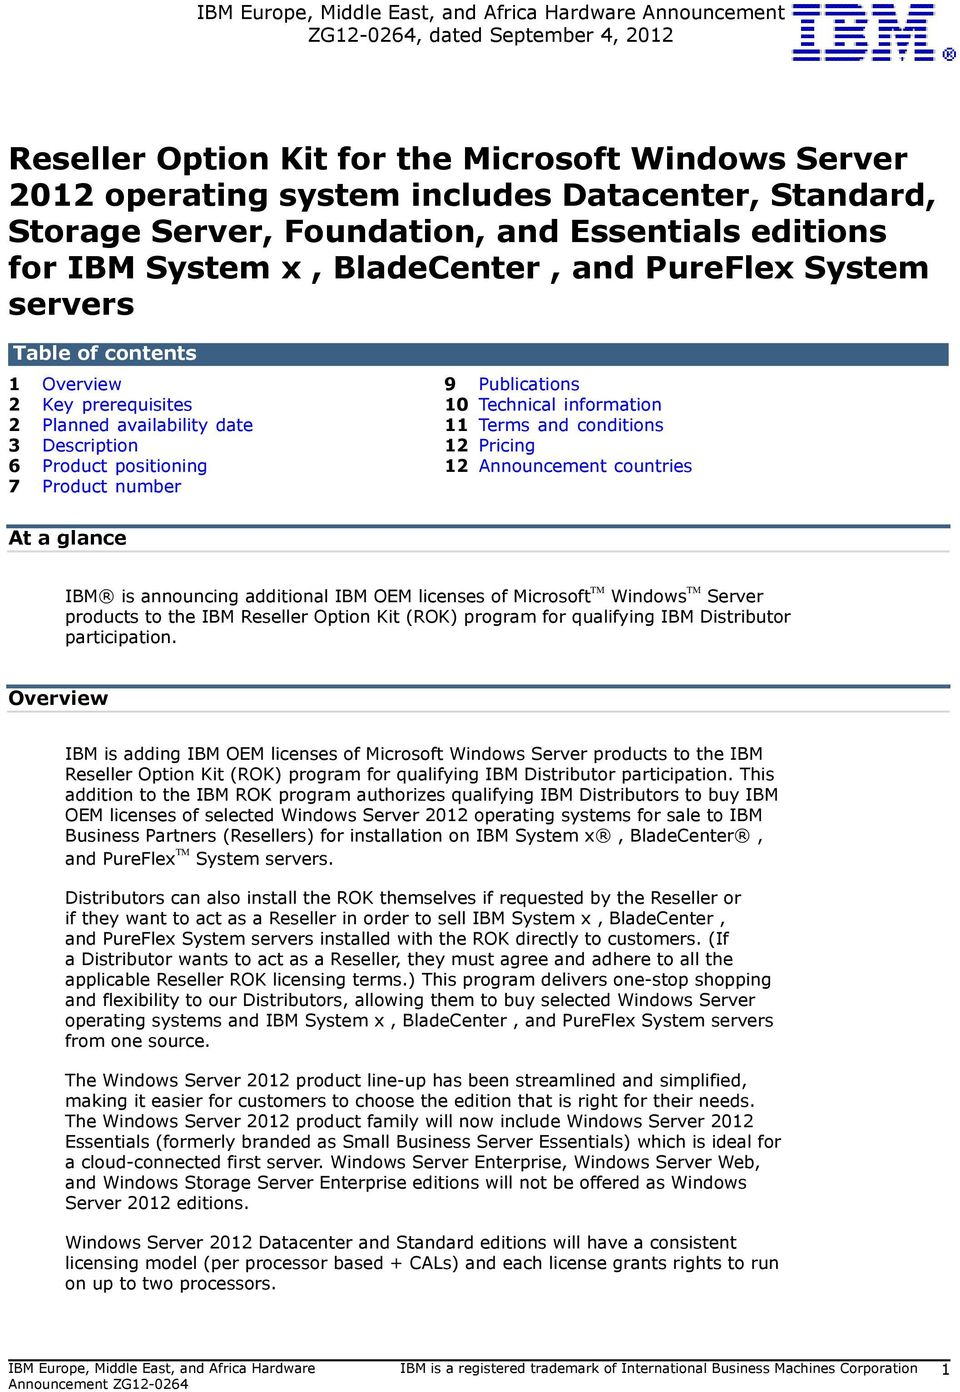 conditions 3 Description 12 Pricing 6 Product positioning 12 Announcement countries 7 Product number At a glance IBM is announcing additional IBM OEM licenses of Microsoft TM Windows TM Server